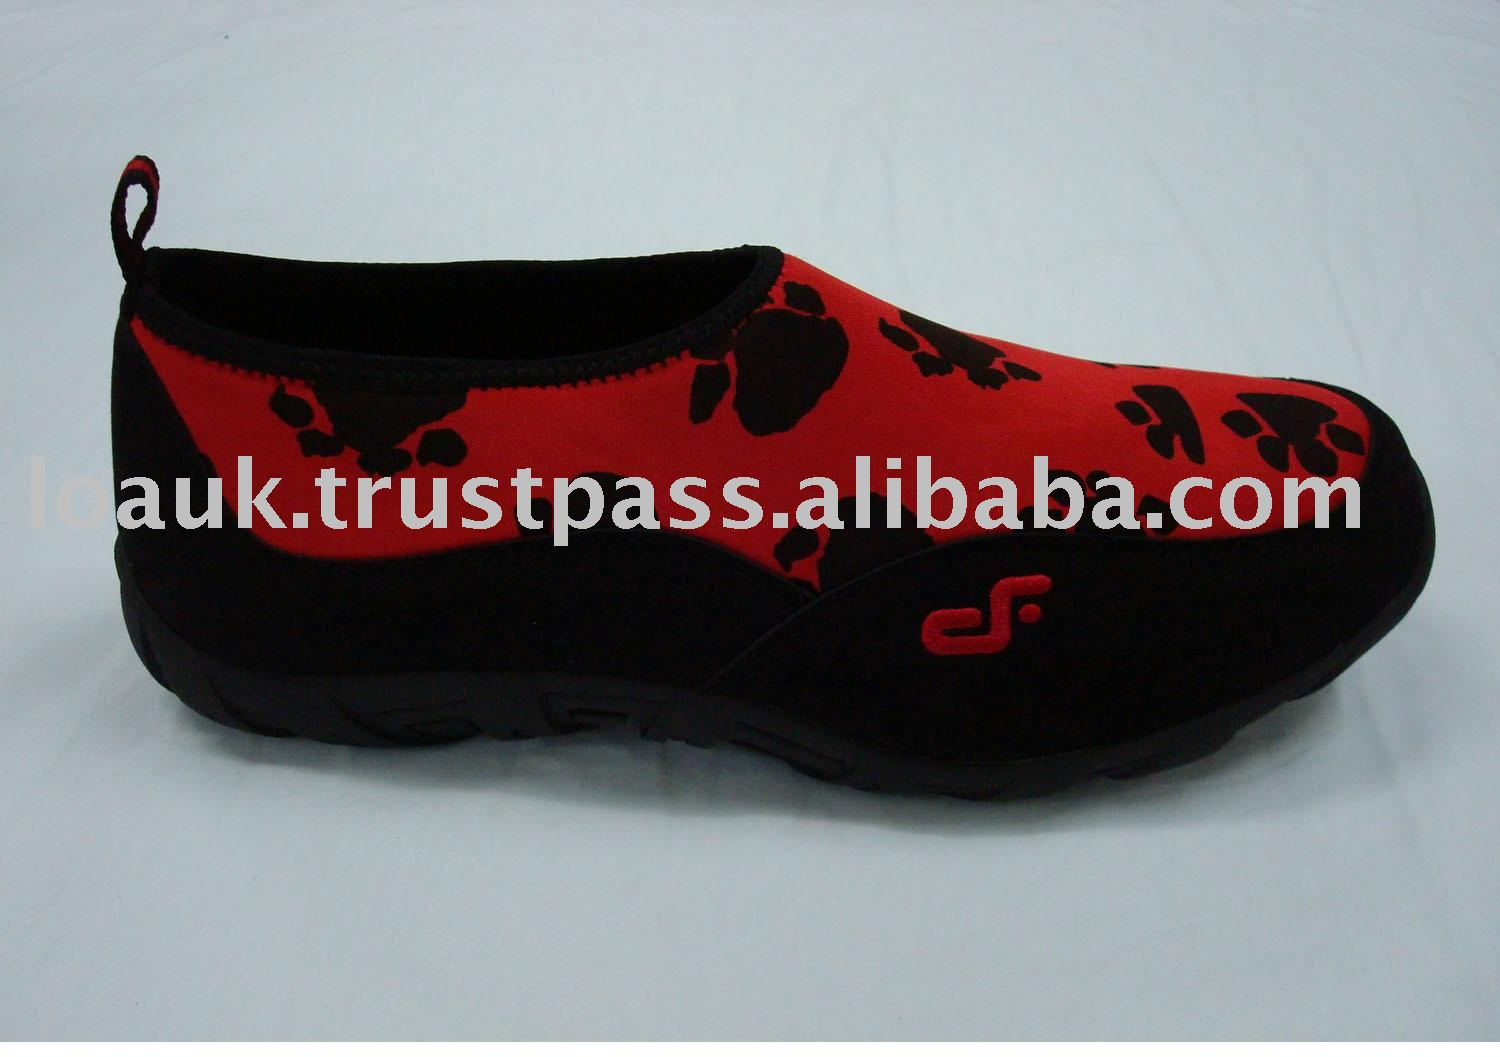 Black and red slip-on shoe dfsbr0022008